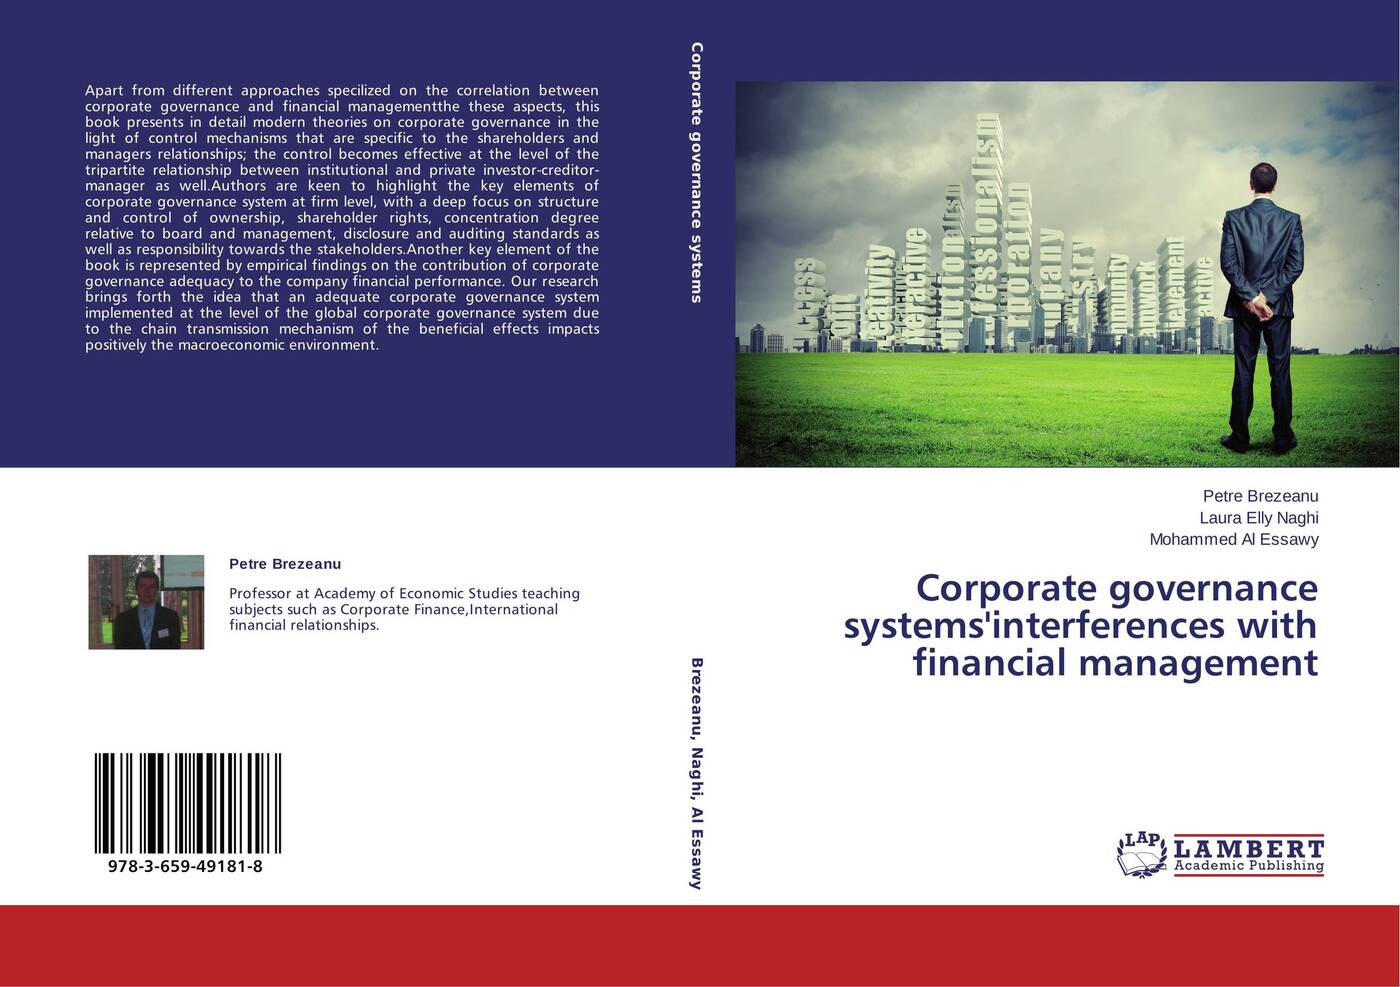 Petre Brezeanu,Laura Elly Naghi and Mohammed Al Essawy Corporate governance systems'interferences with financial management integral management and governance empirical findings of mer model